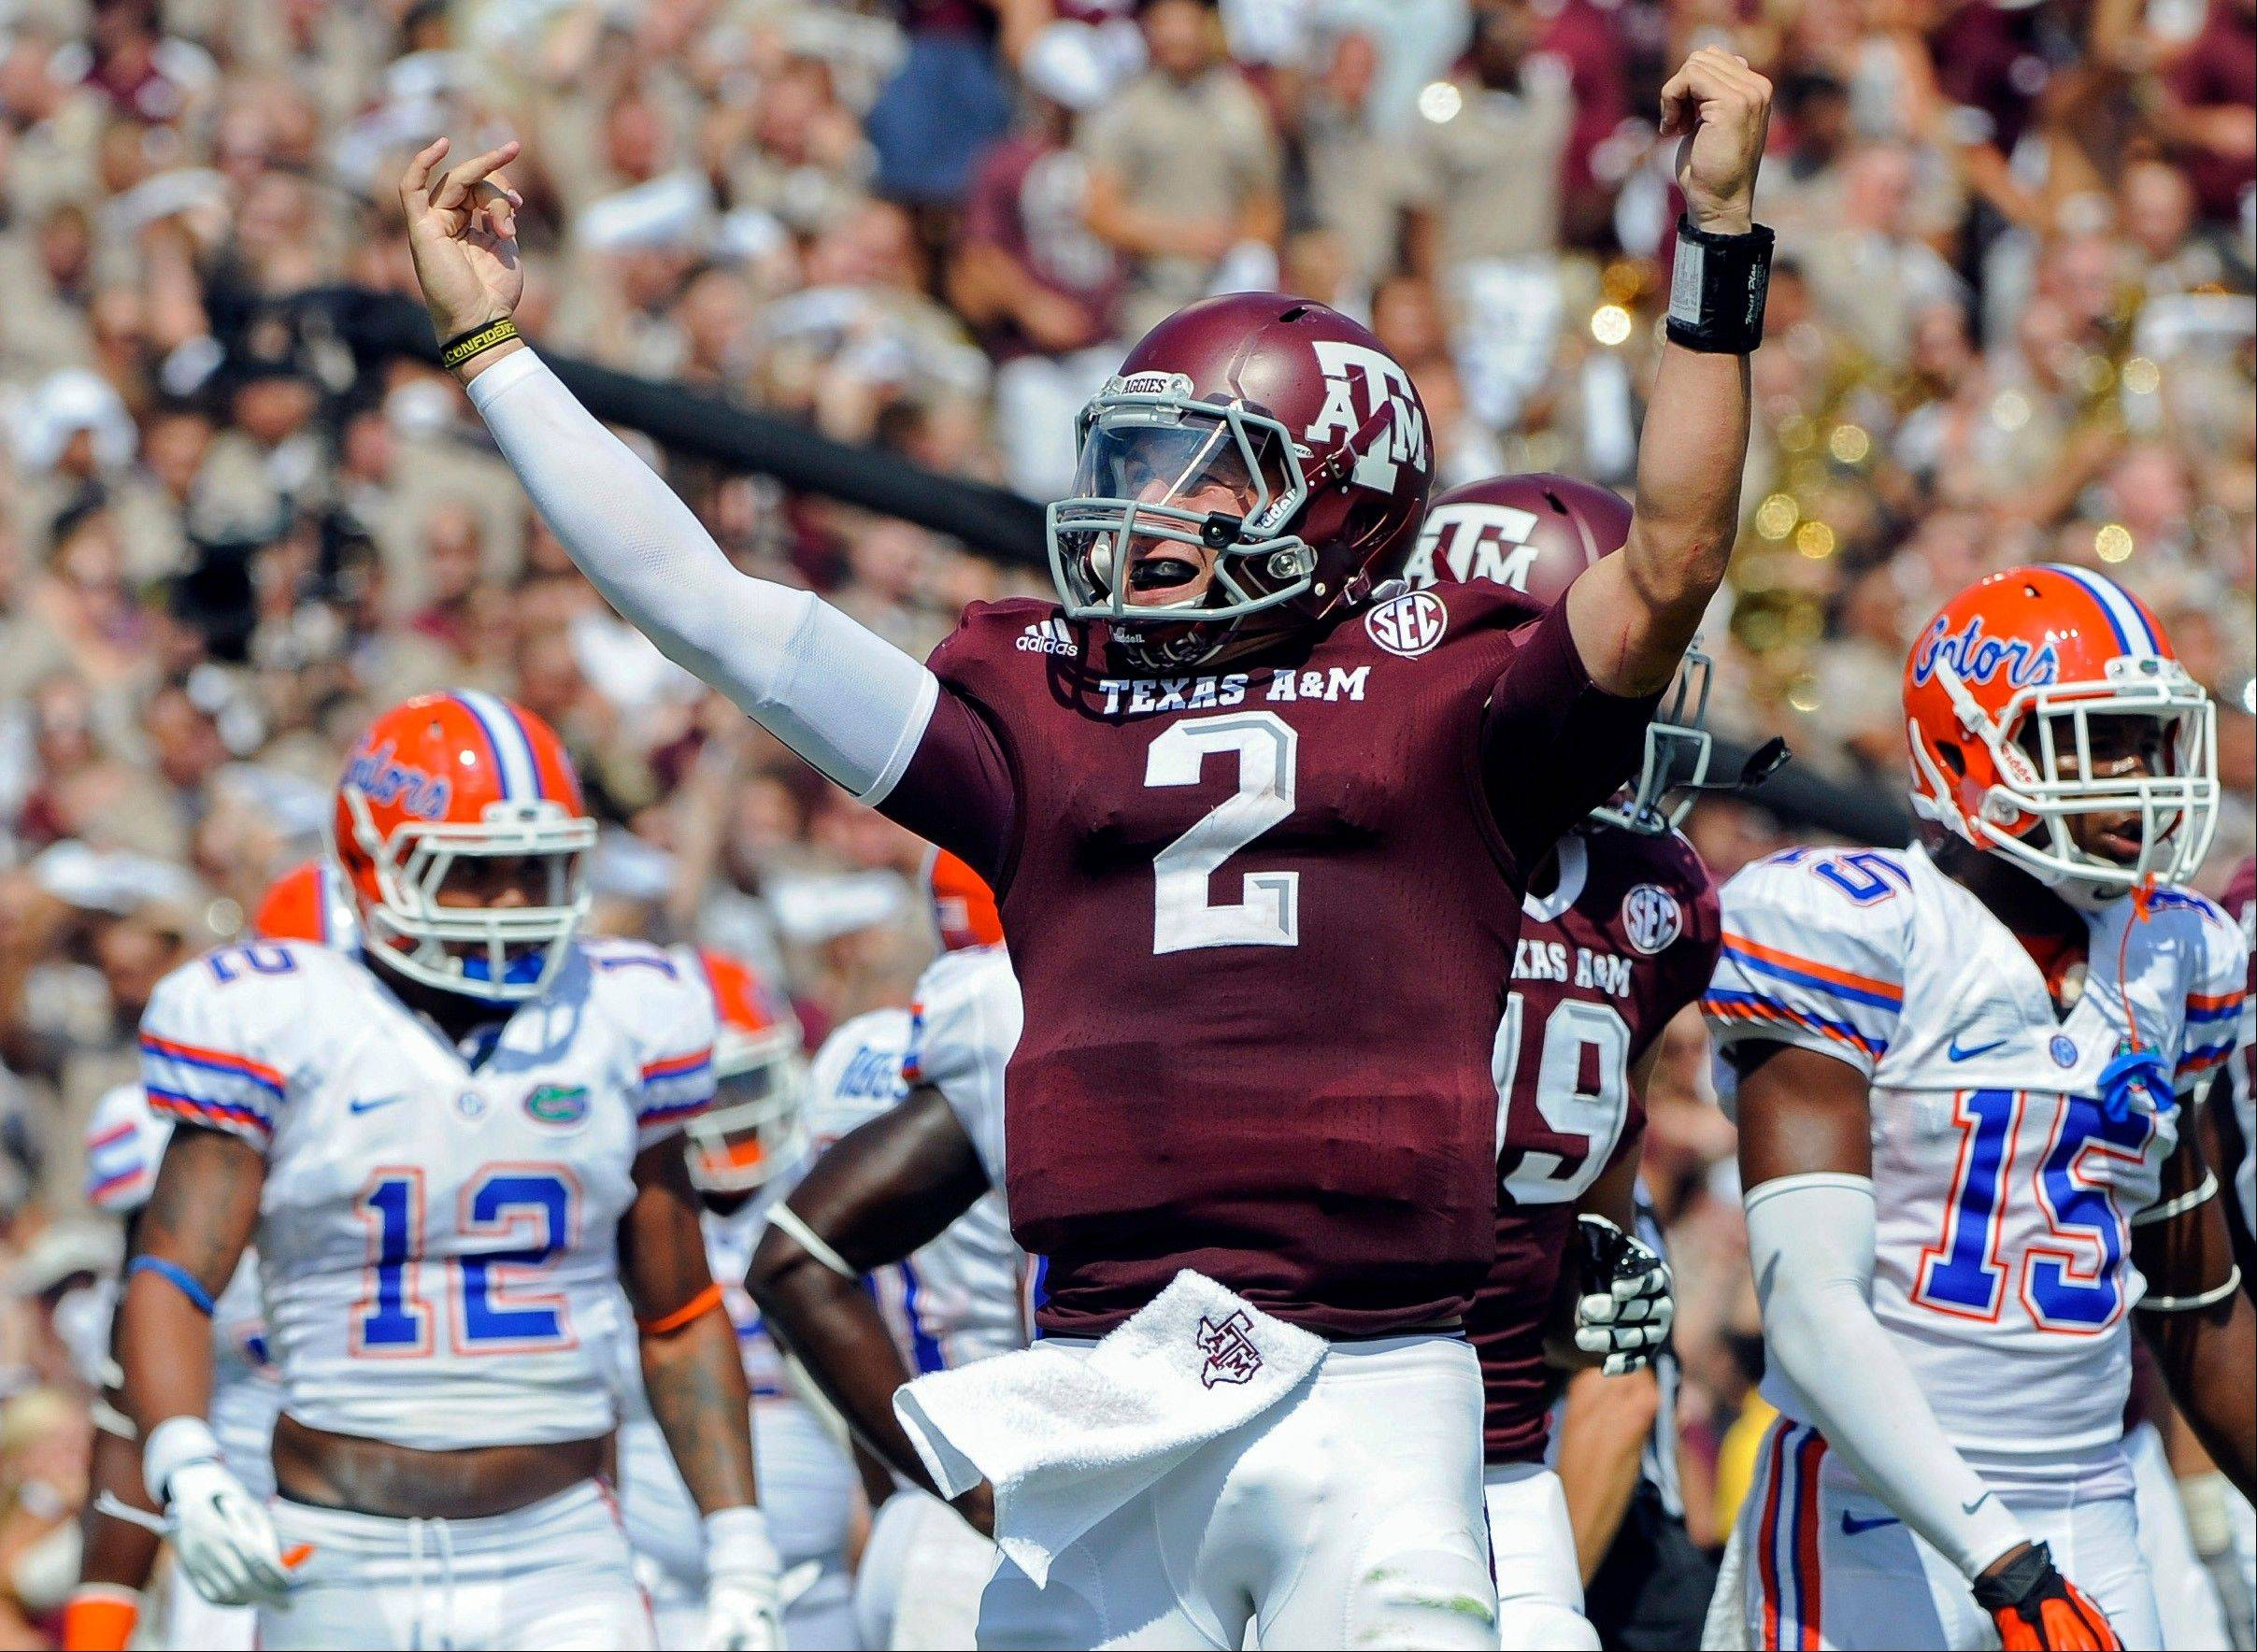 Texas A&M quarterback Johnny Manziel (2) has captured The Associated Press Player of the Year award. The freshman collected 31 votes, which were were more than twice that of second-place finisher Manti Te'o of Notre Dame.